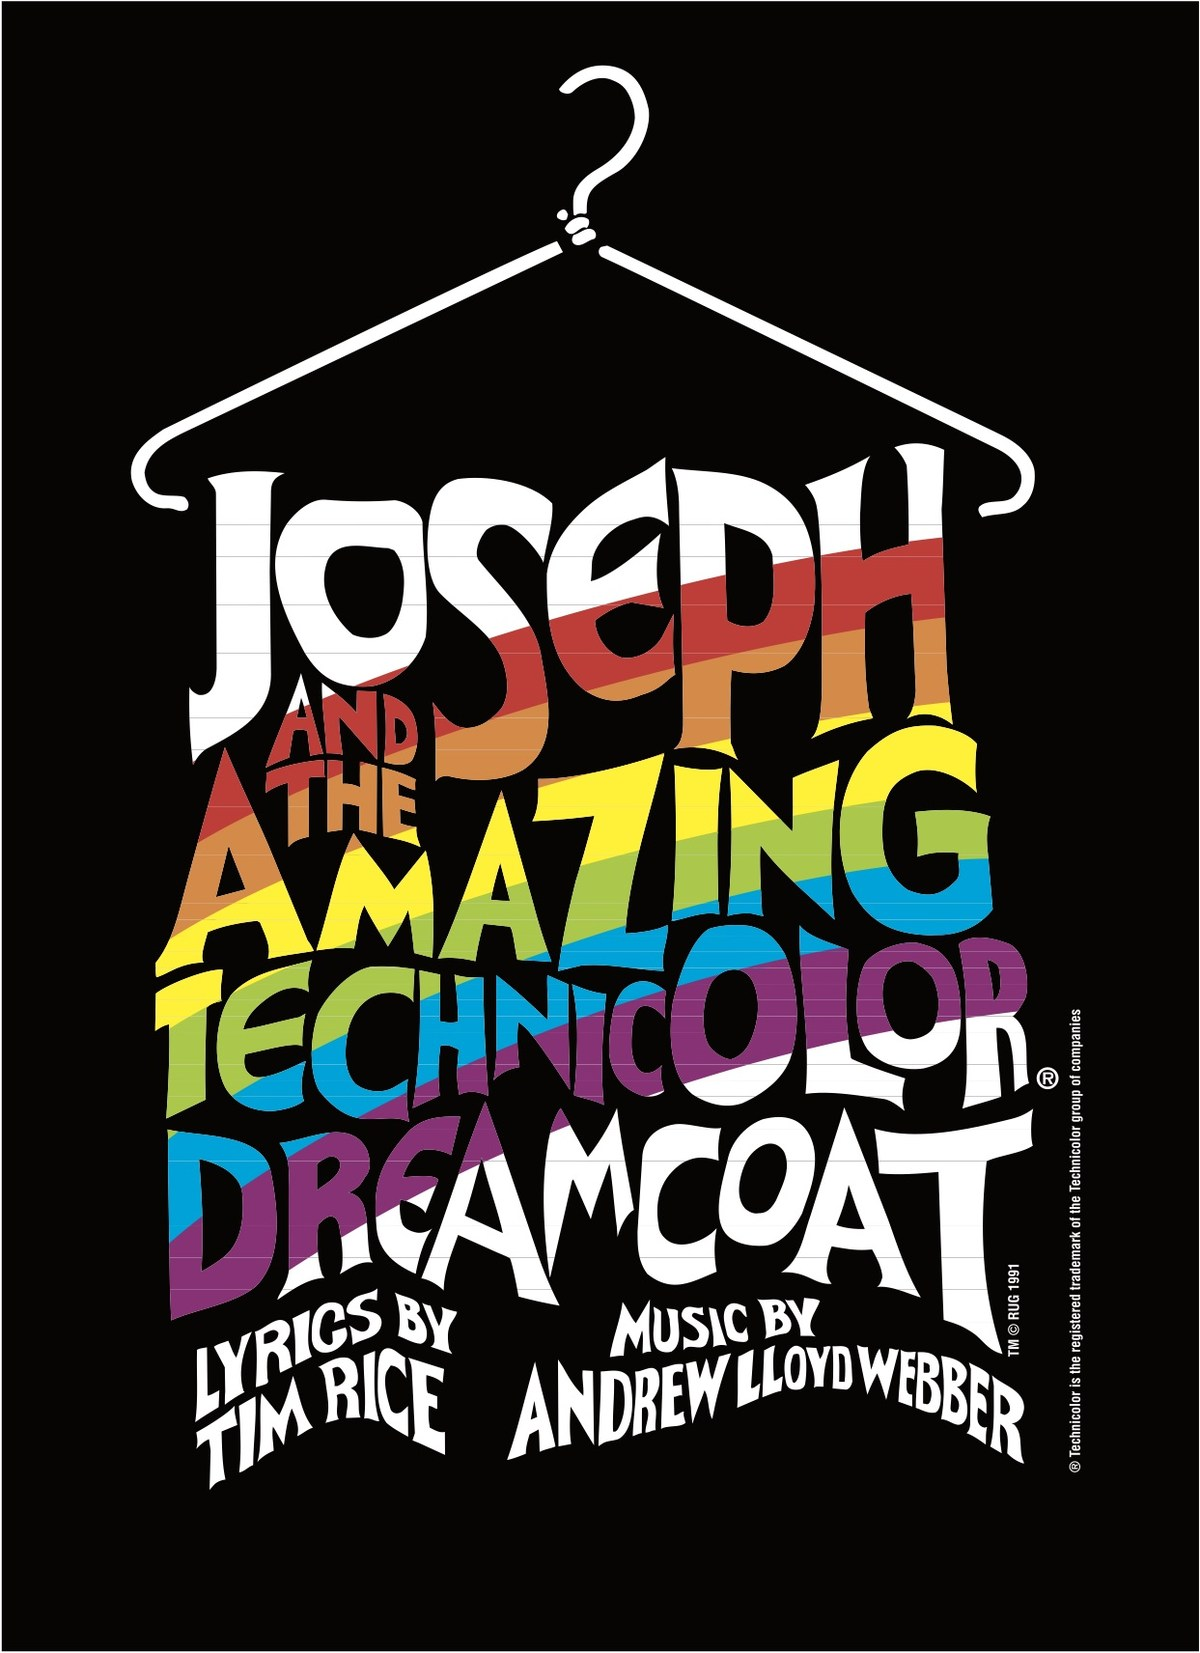 Joseph and the Technicolor Dreamcoat Logo